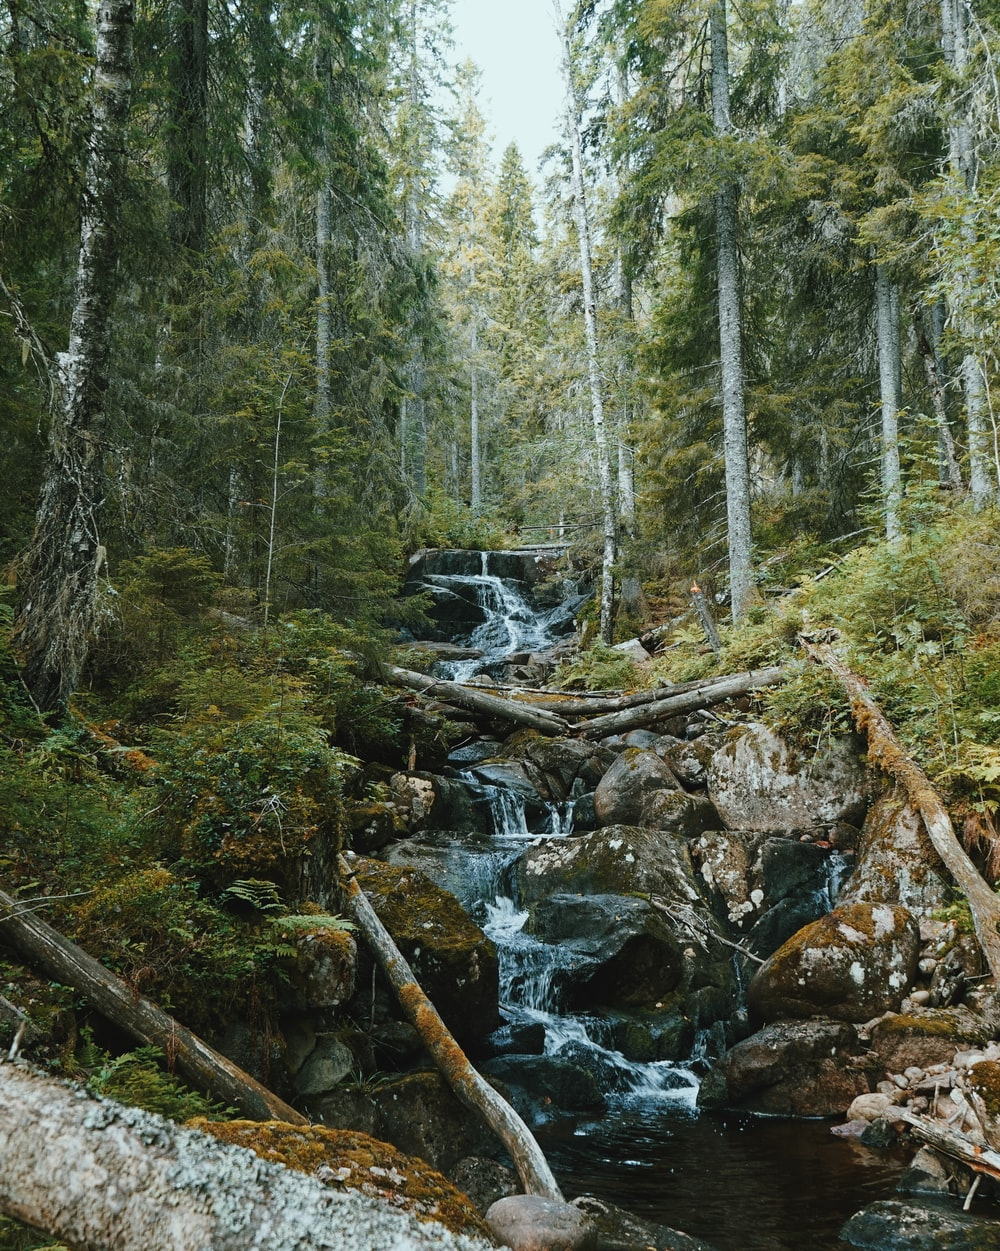 river flowing with rocks surrounded by trees